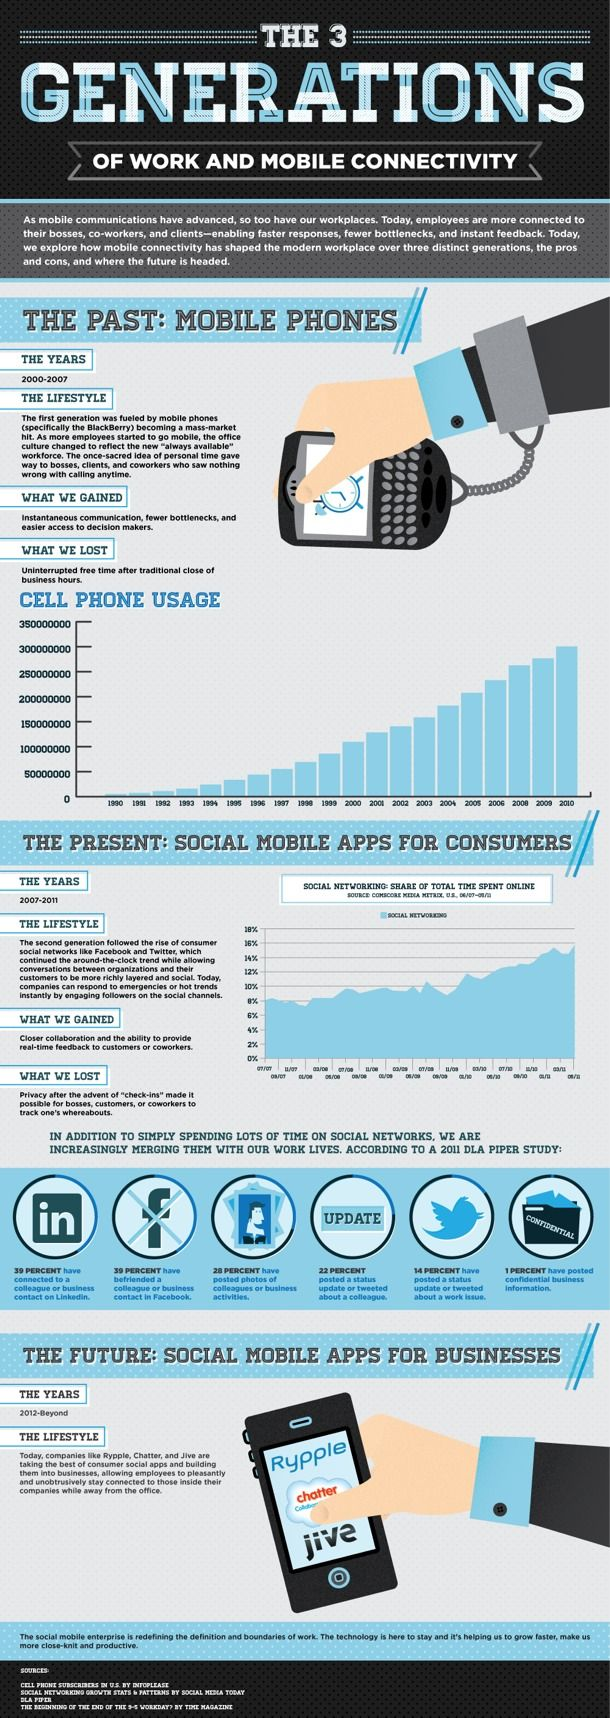 The 3 Generations of Work and Mobile Connectivity. #BYOD #EnterpriseMobility #Infographic